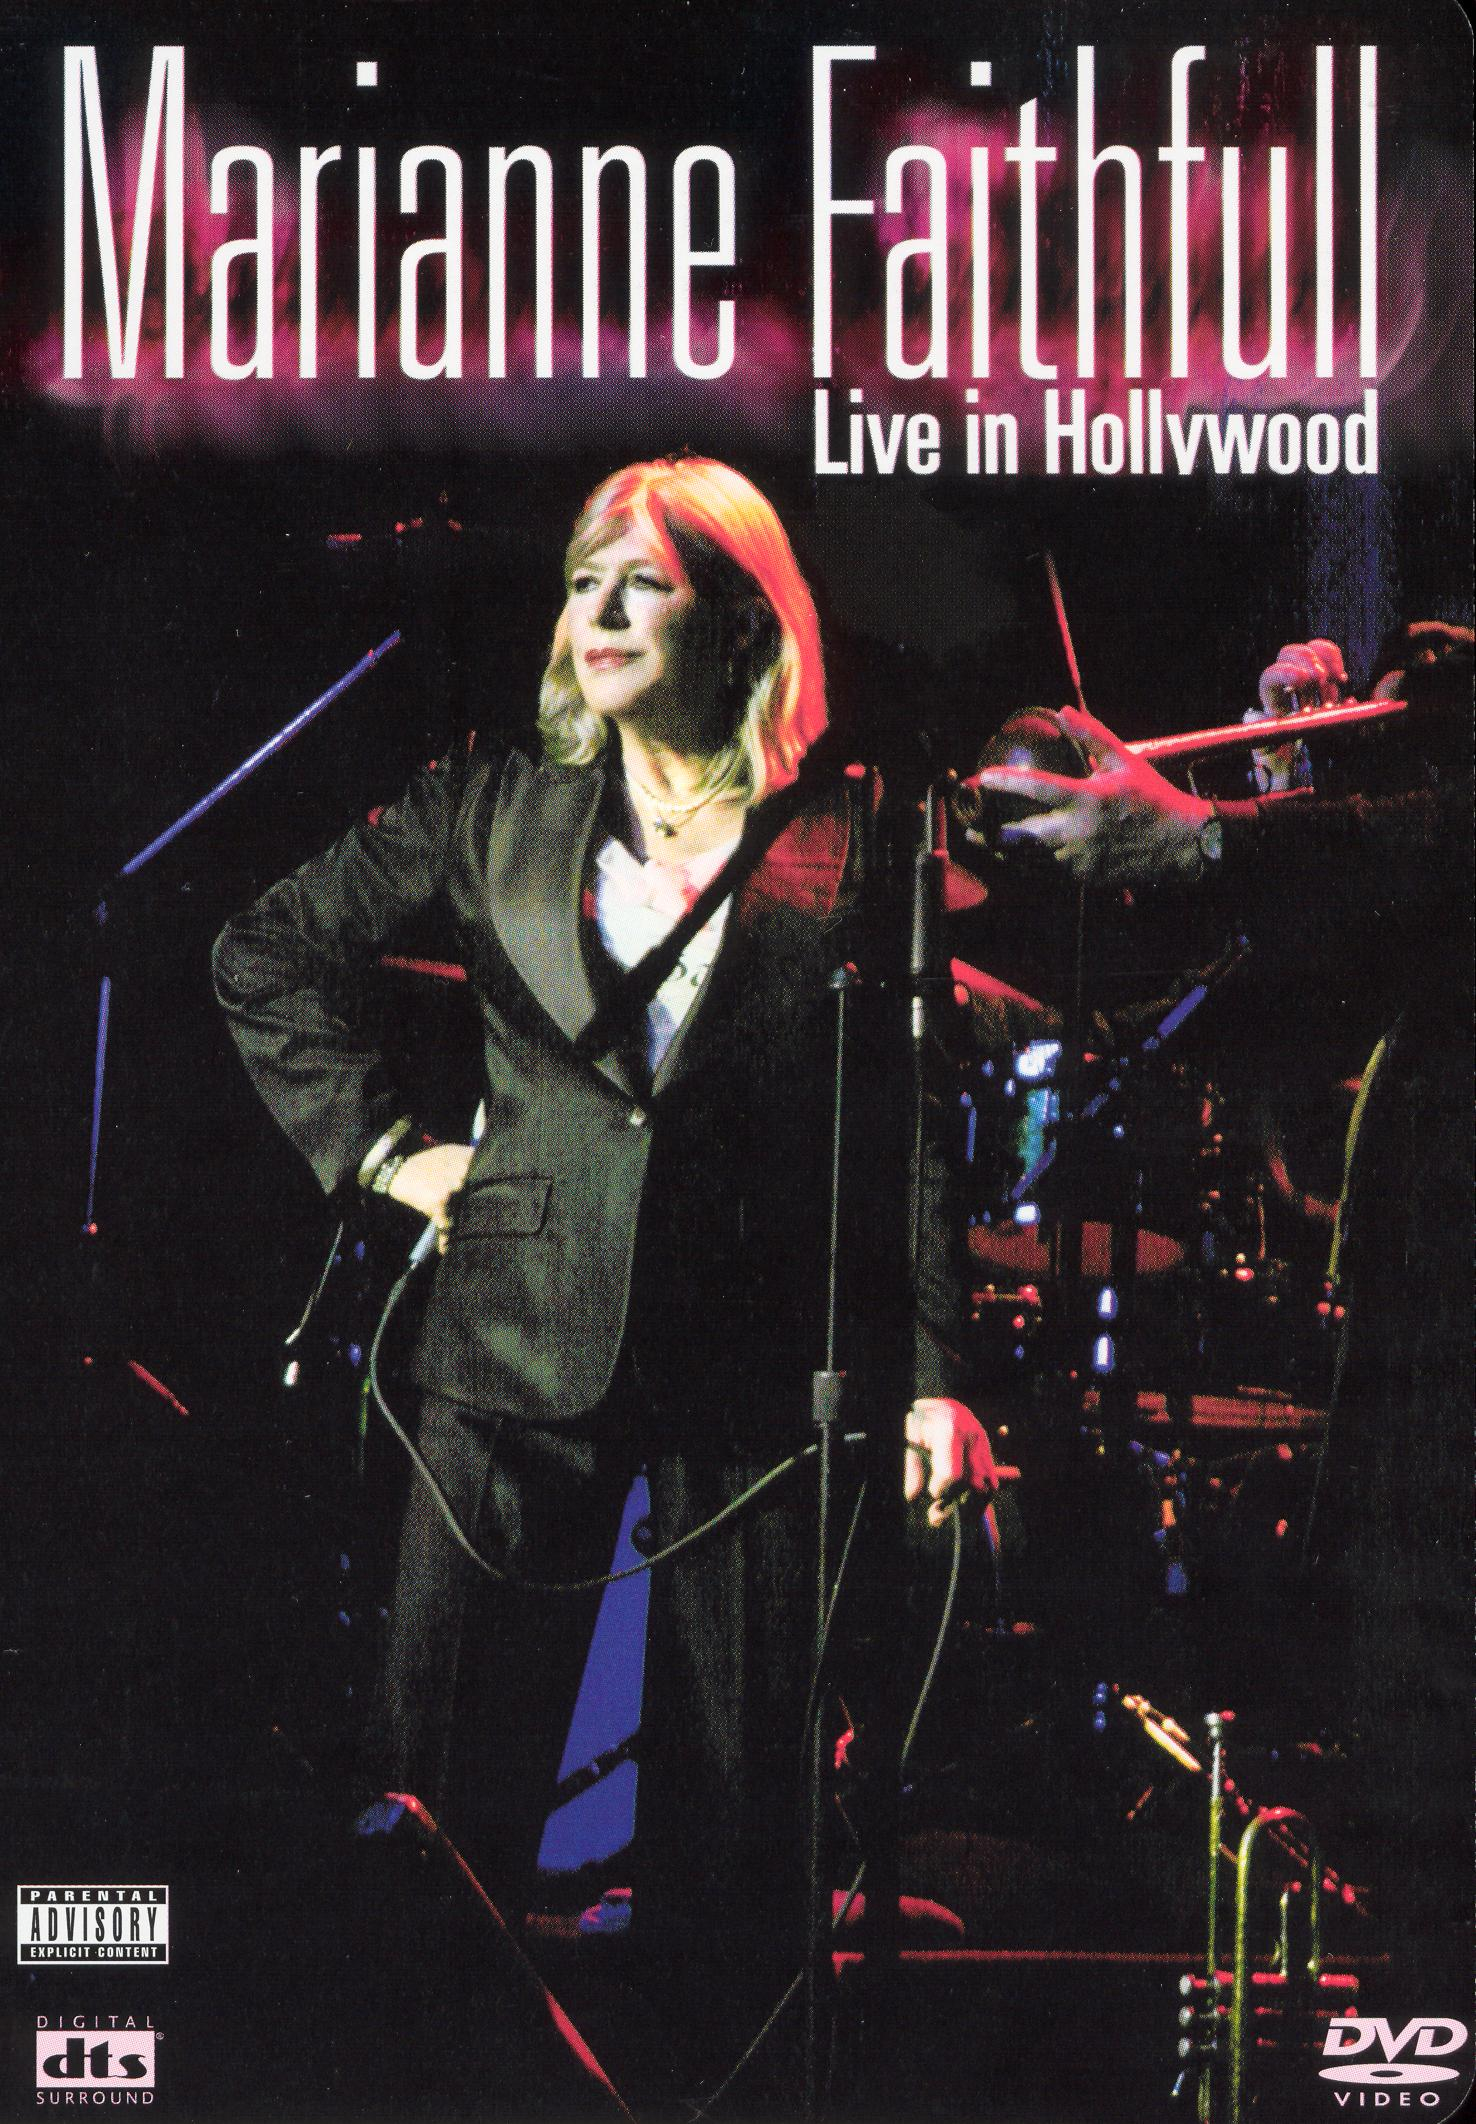 Marianne Faithfull: Live in Hollywood at the Henry Fonda Theater